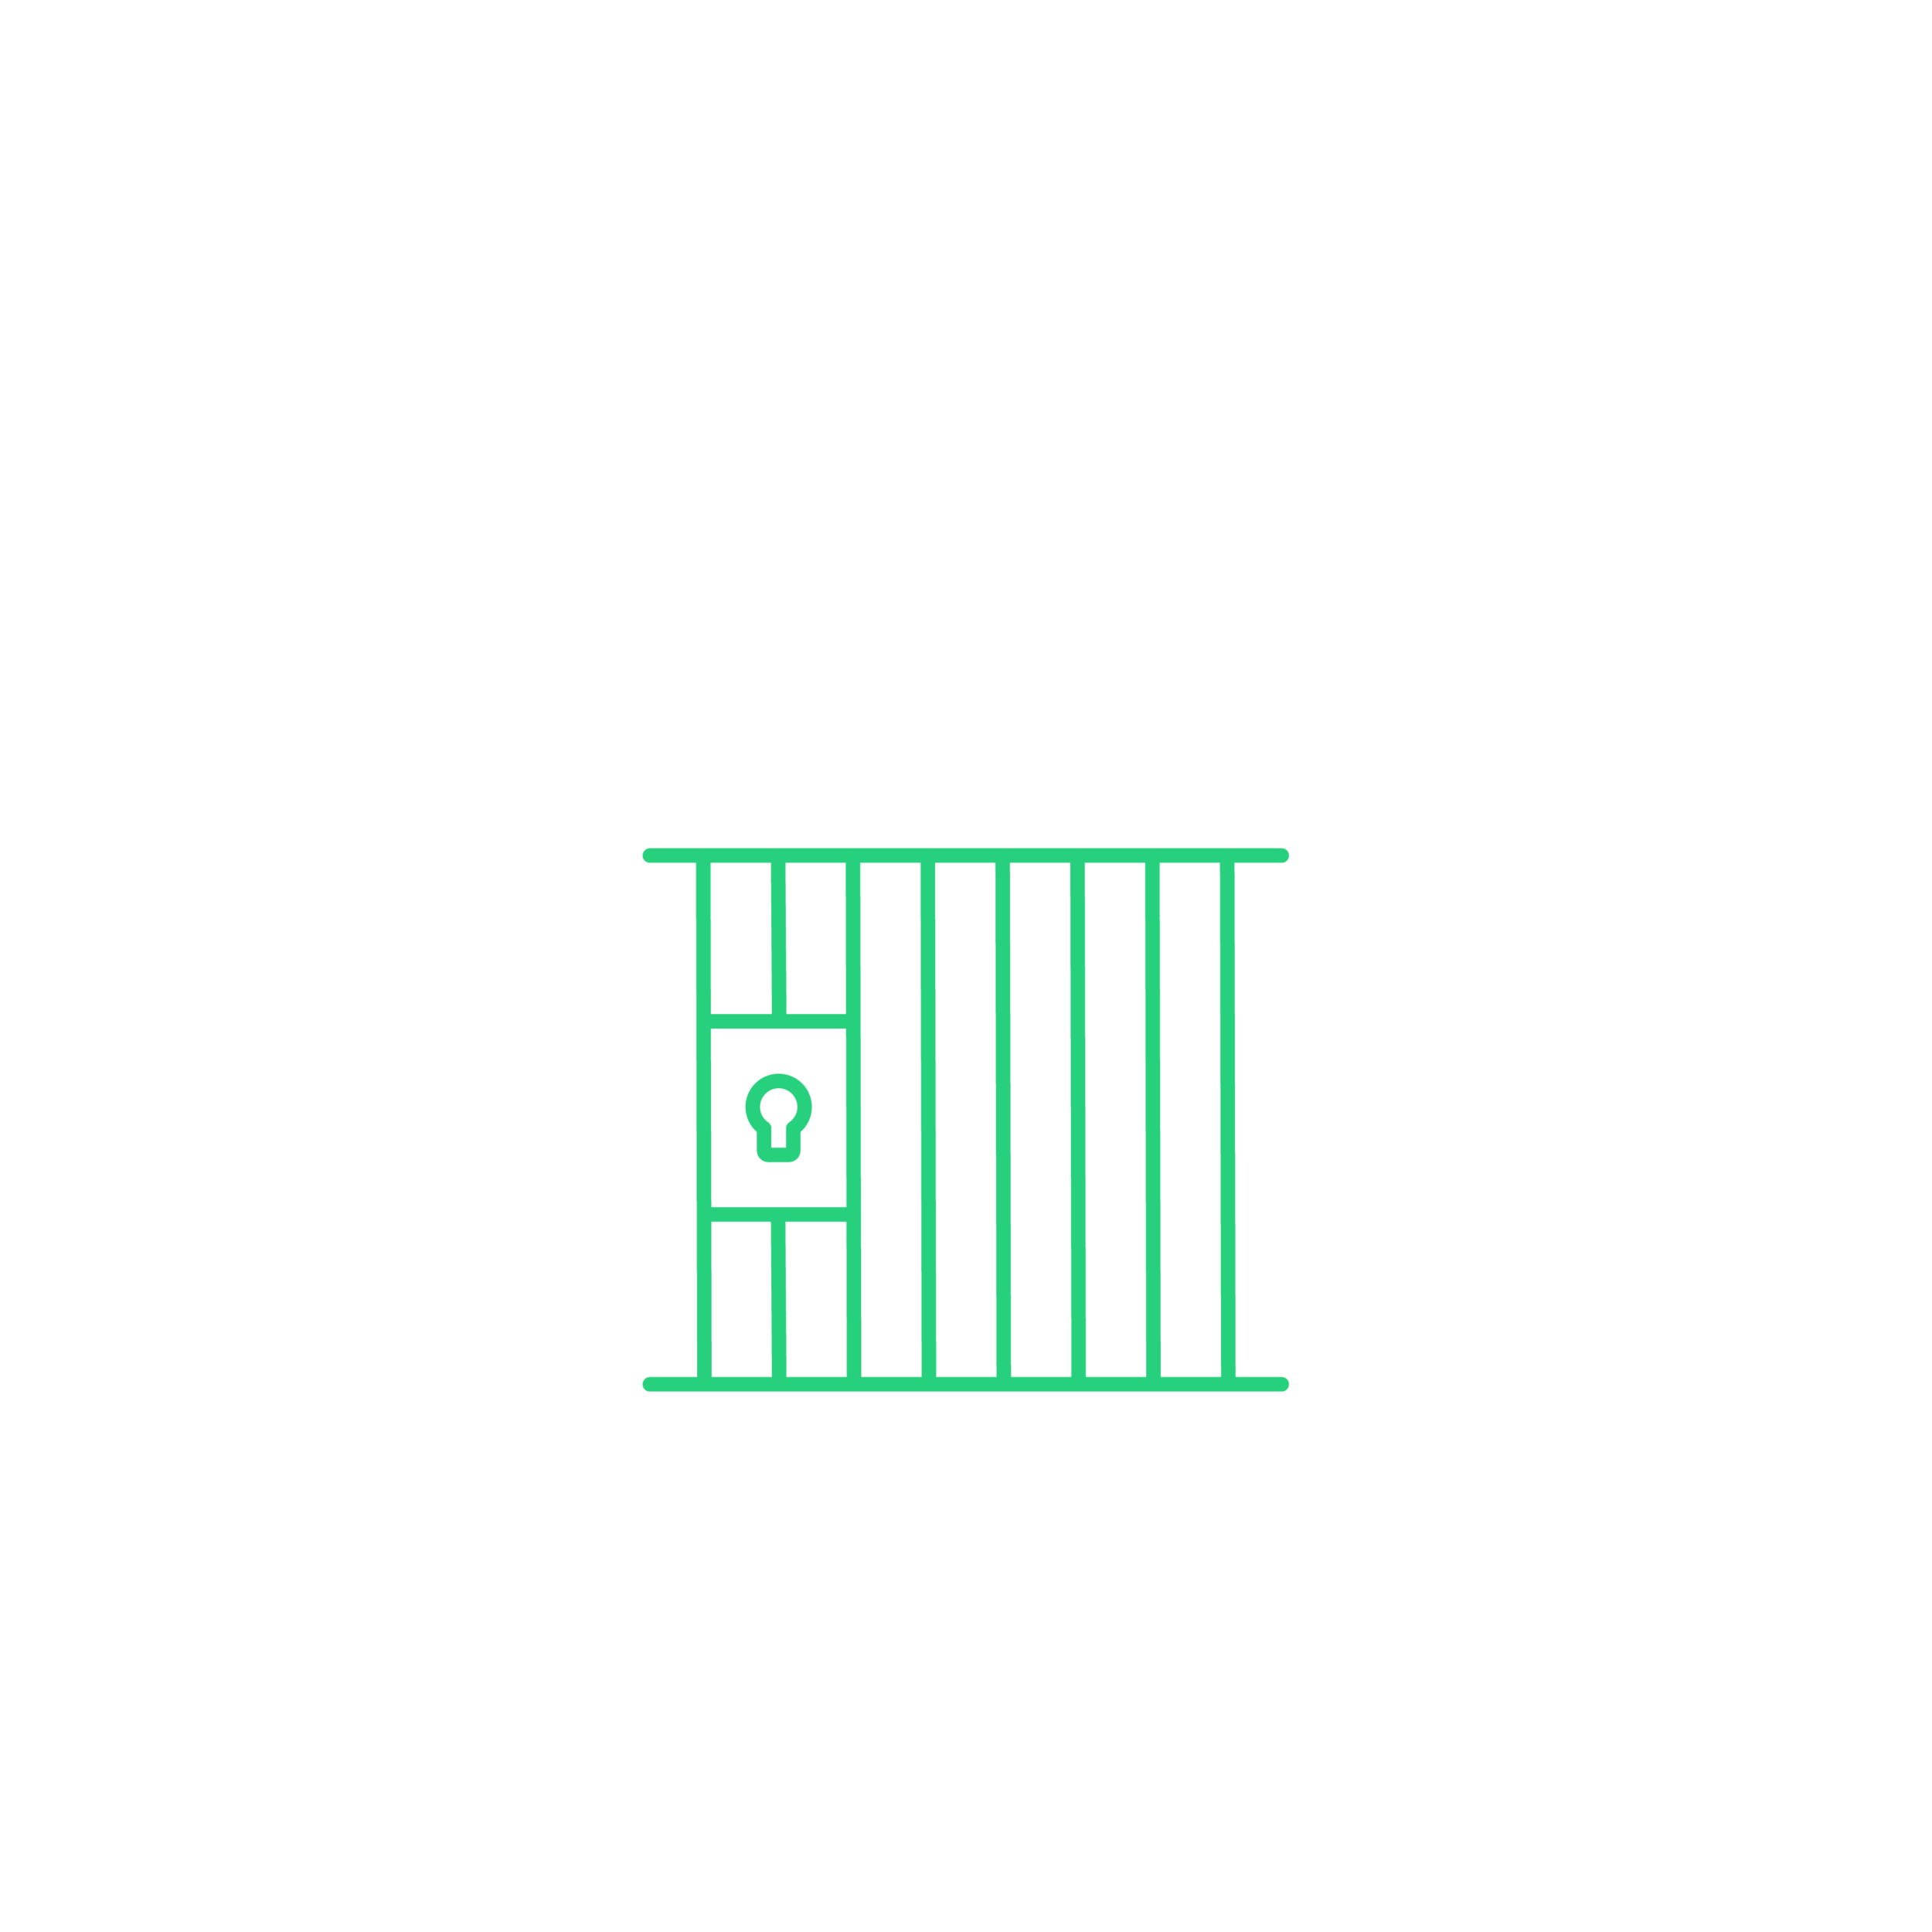 icon_bars-02.png